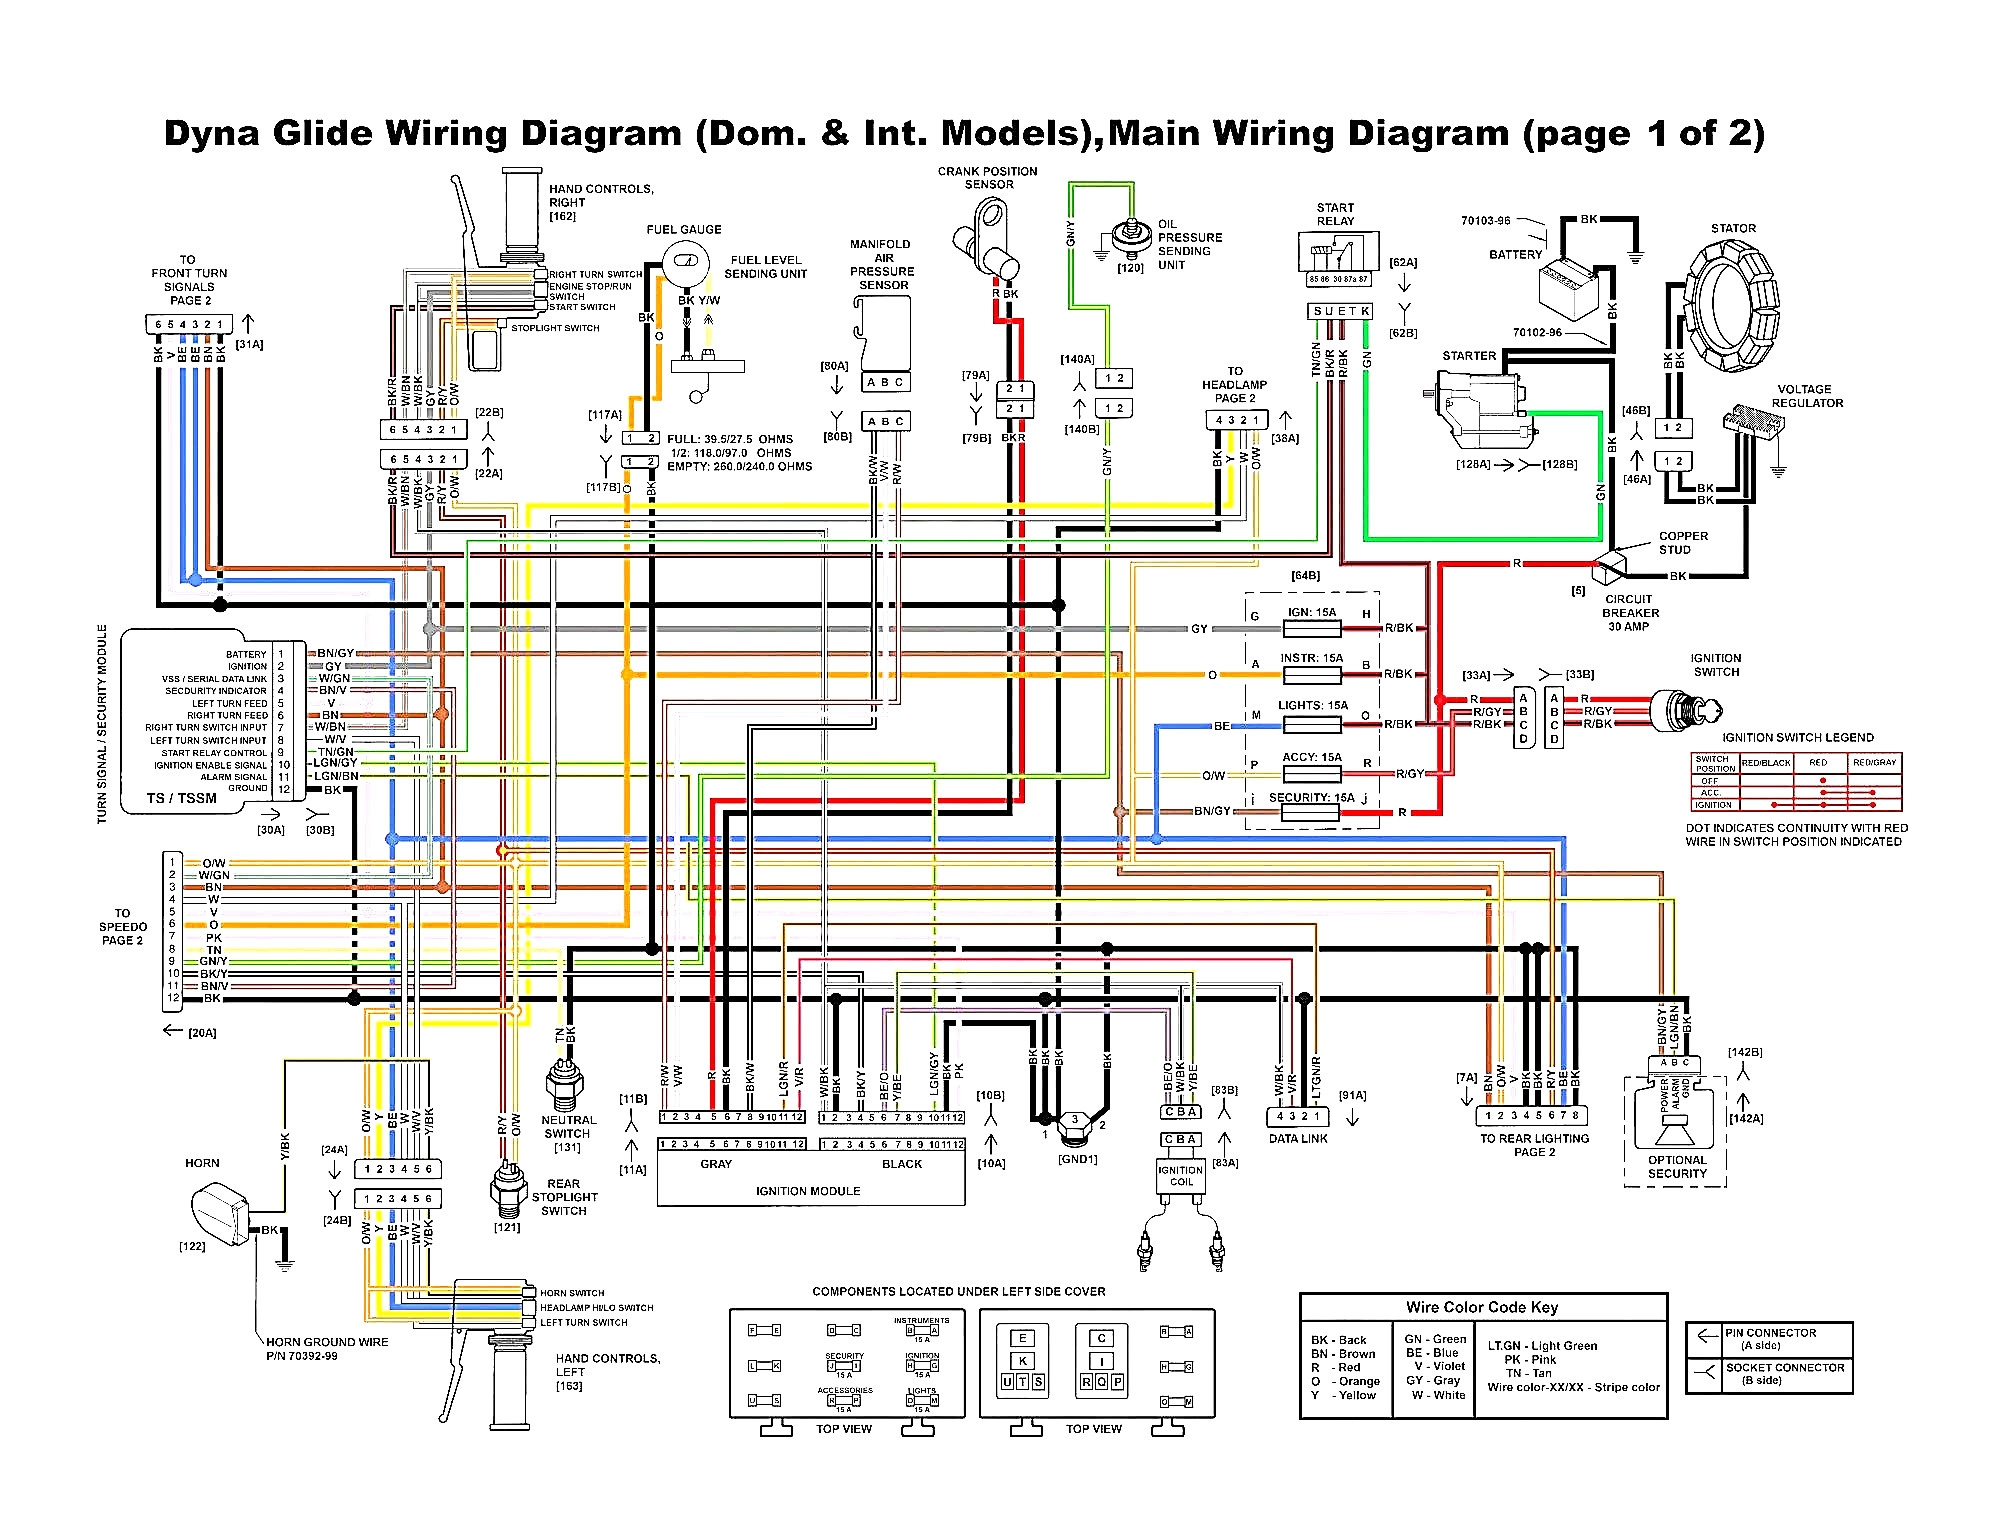 wiring diagram for harley davidson softail Download-Harley Davidson Wiring Diagram Divine Appearance Carlplant que 5-n